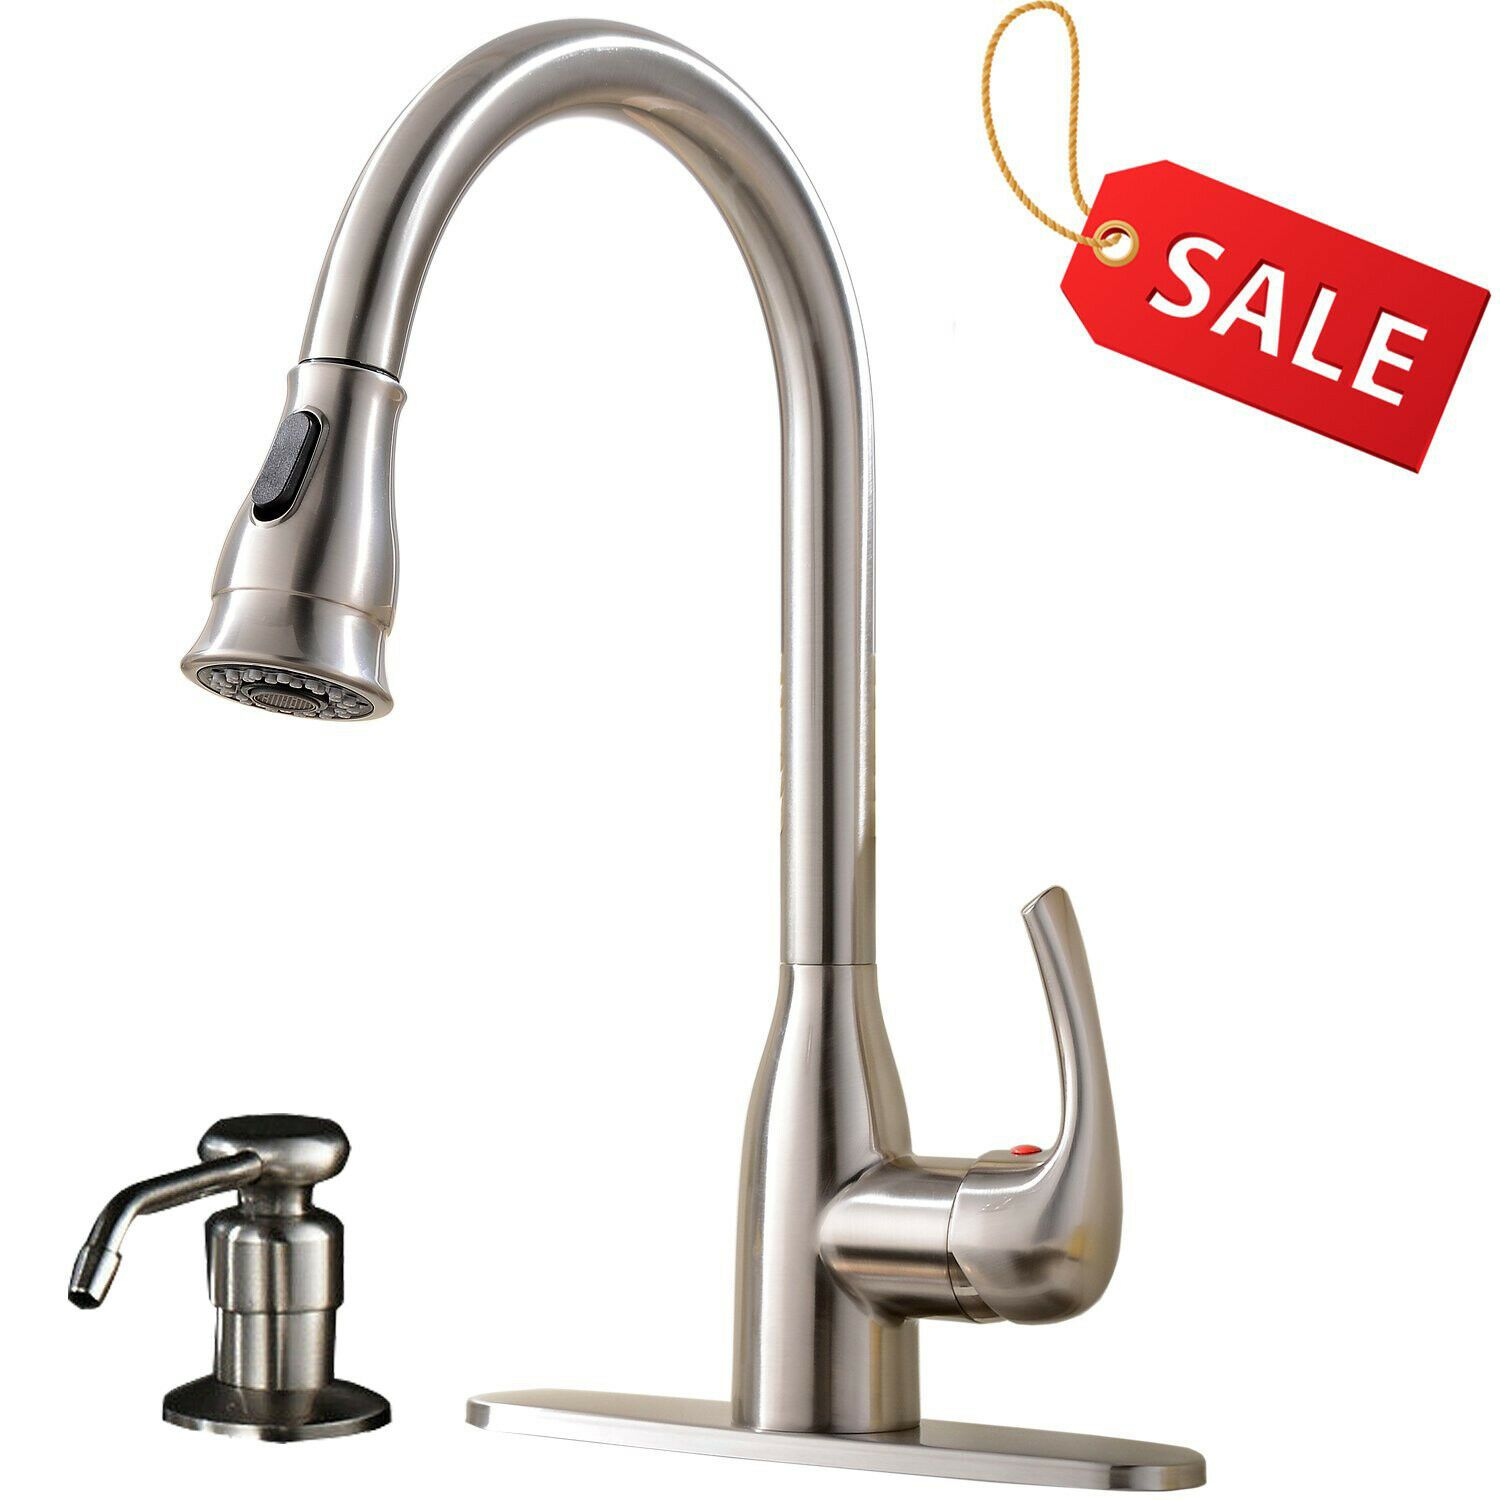 Single Handle Kitchen Sink Faucet Pull Down Sprayer Brushed Nickel Mixer Tap Kitchen Faucets Ideas Of Kitchen Kitchen Sink Faucets Sink Faucets Mixer Taps